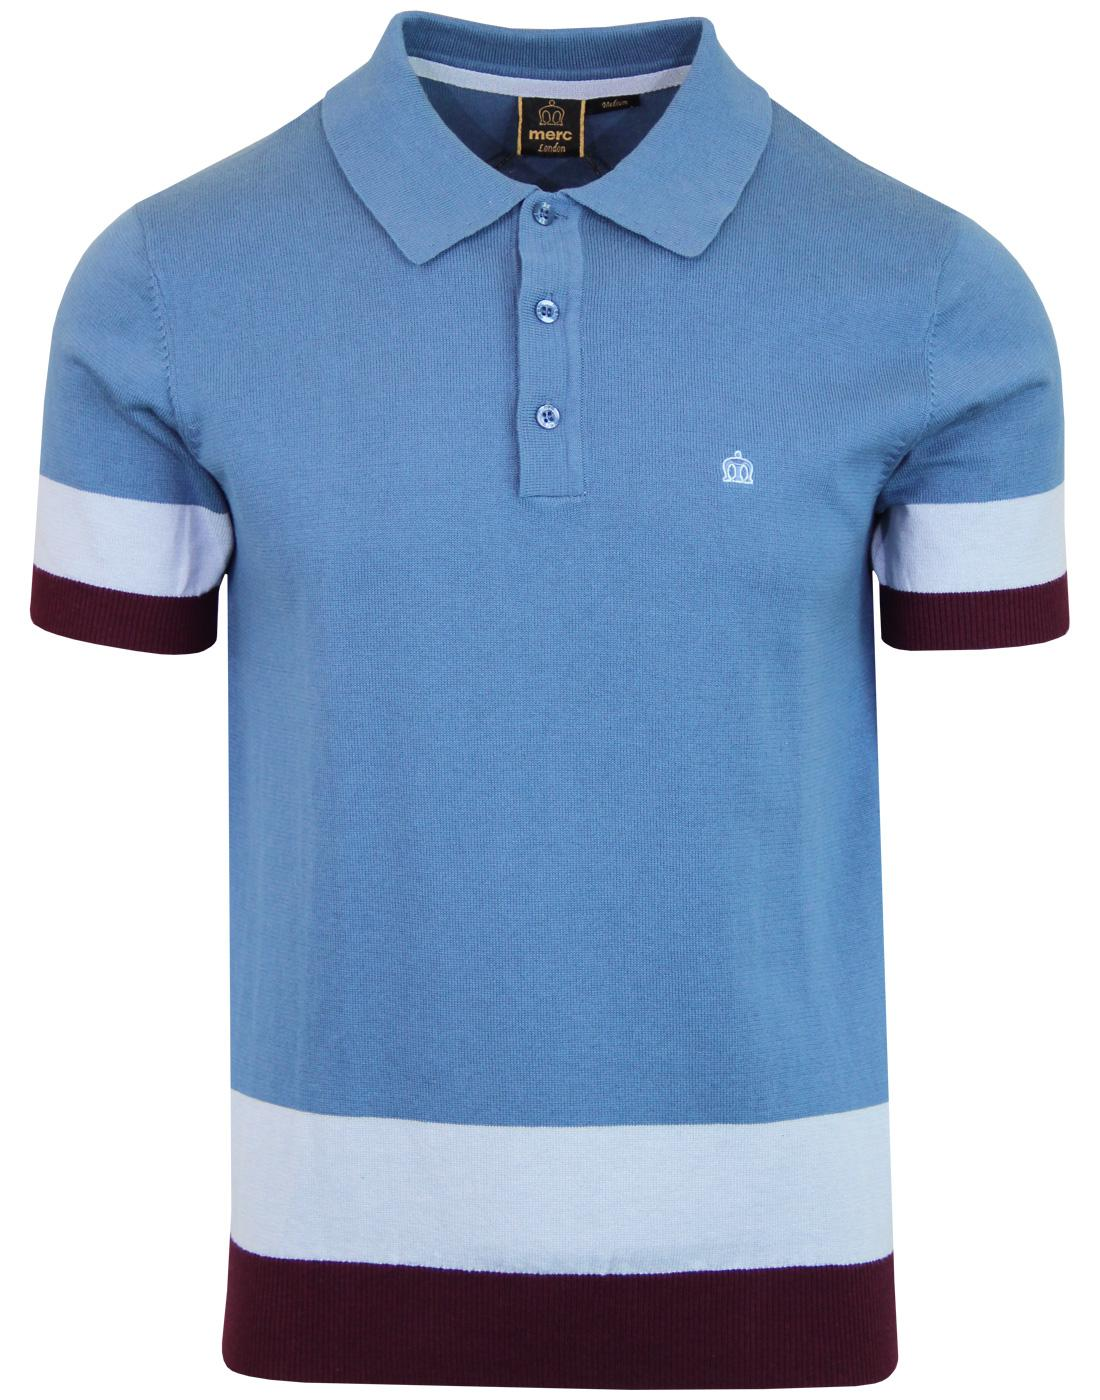 Captain MERC 60s Mod Colour Block Knitted Polo Top